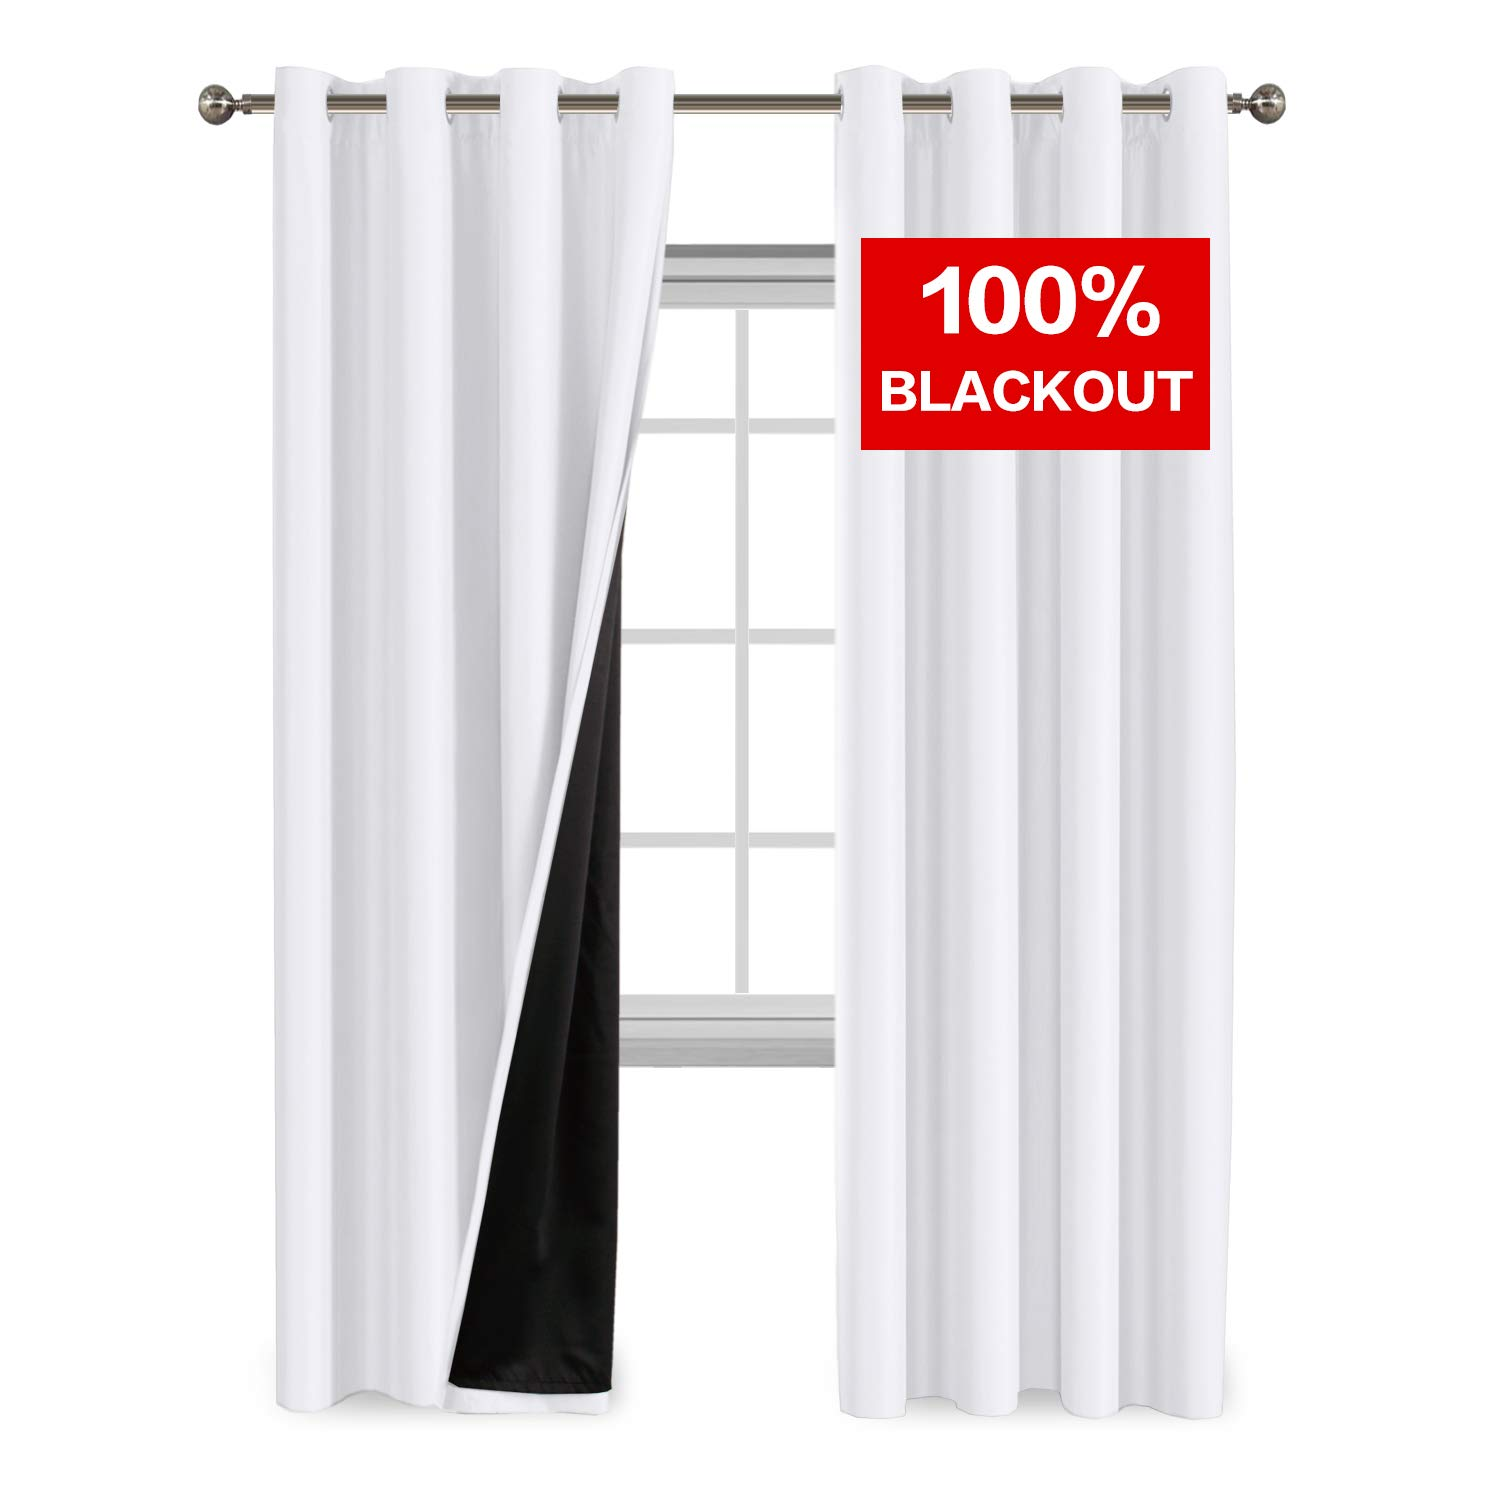 Flamingo P Room Darkening Greyish White Curtains Faux Silk Satin with Black Liner Thermal Insulated Window Treatment Panels, Grommet Top (52 x 96 Inch, Set of 2)